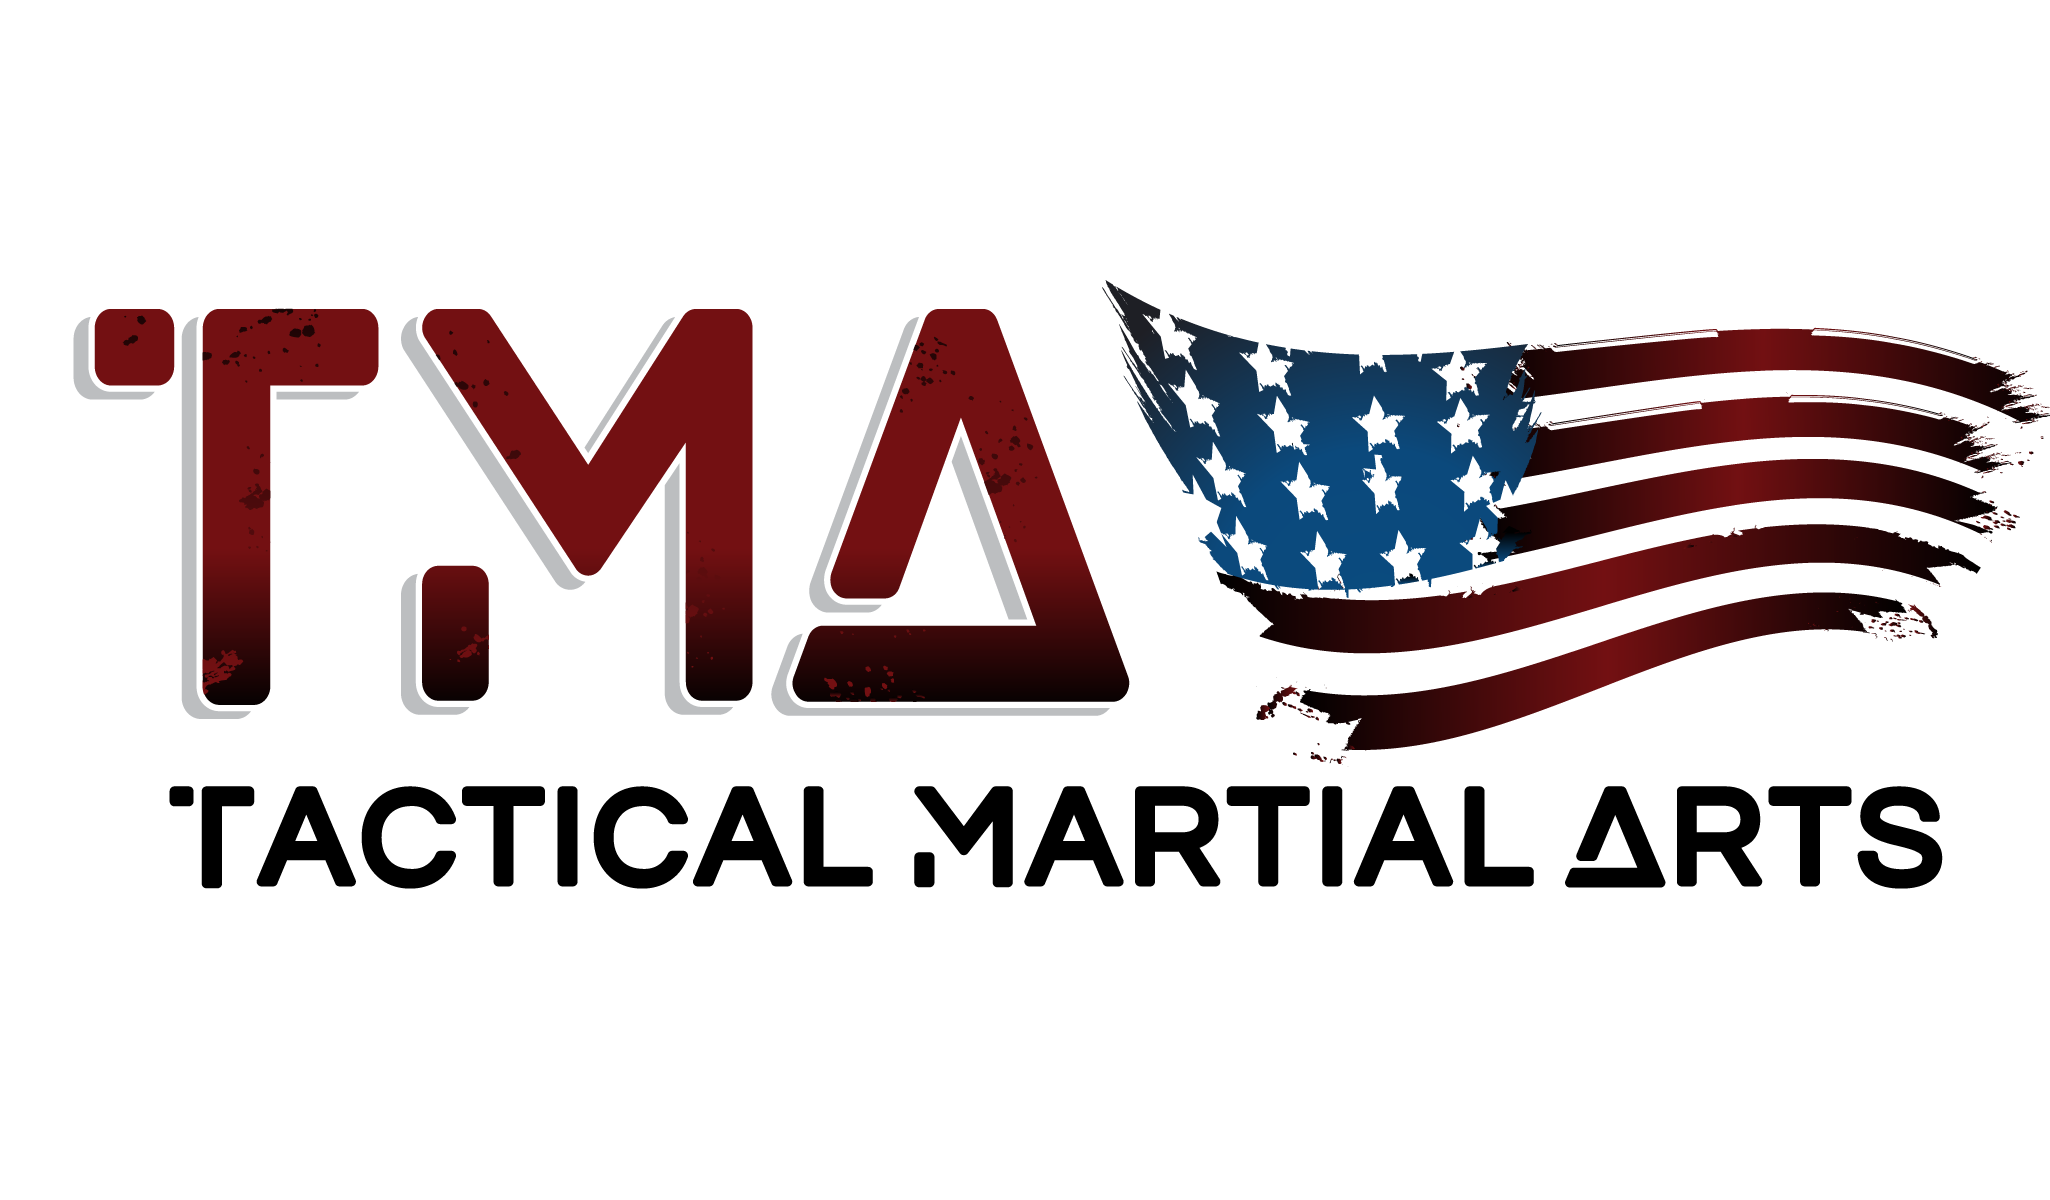 Tactical Martial Arts